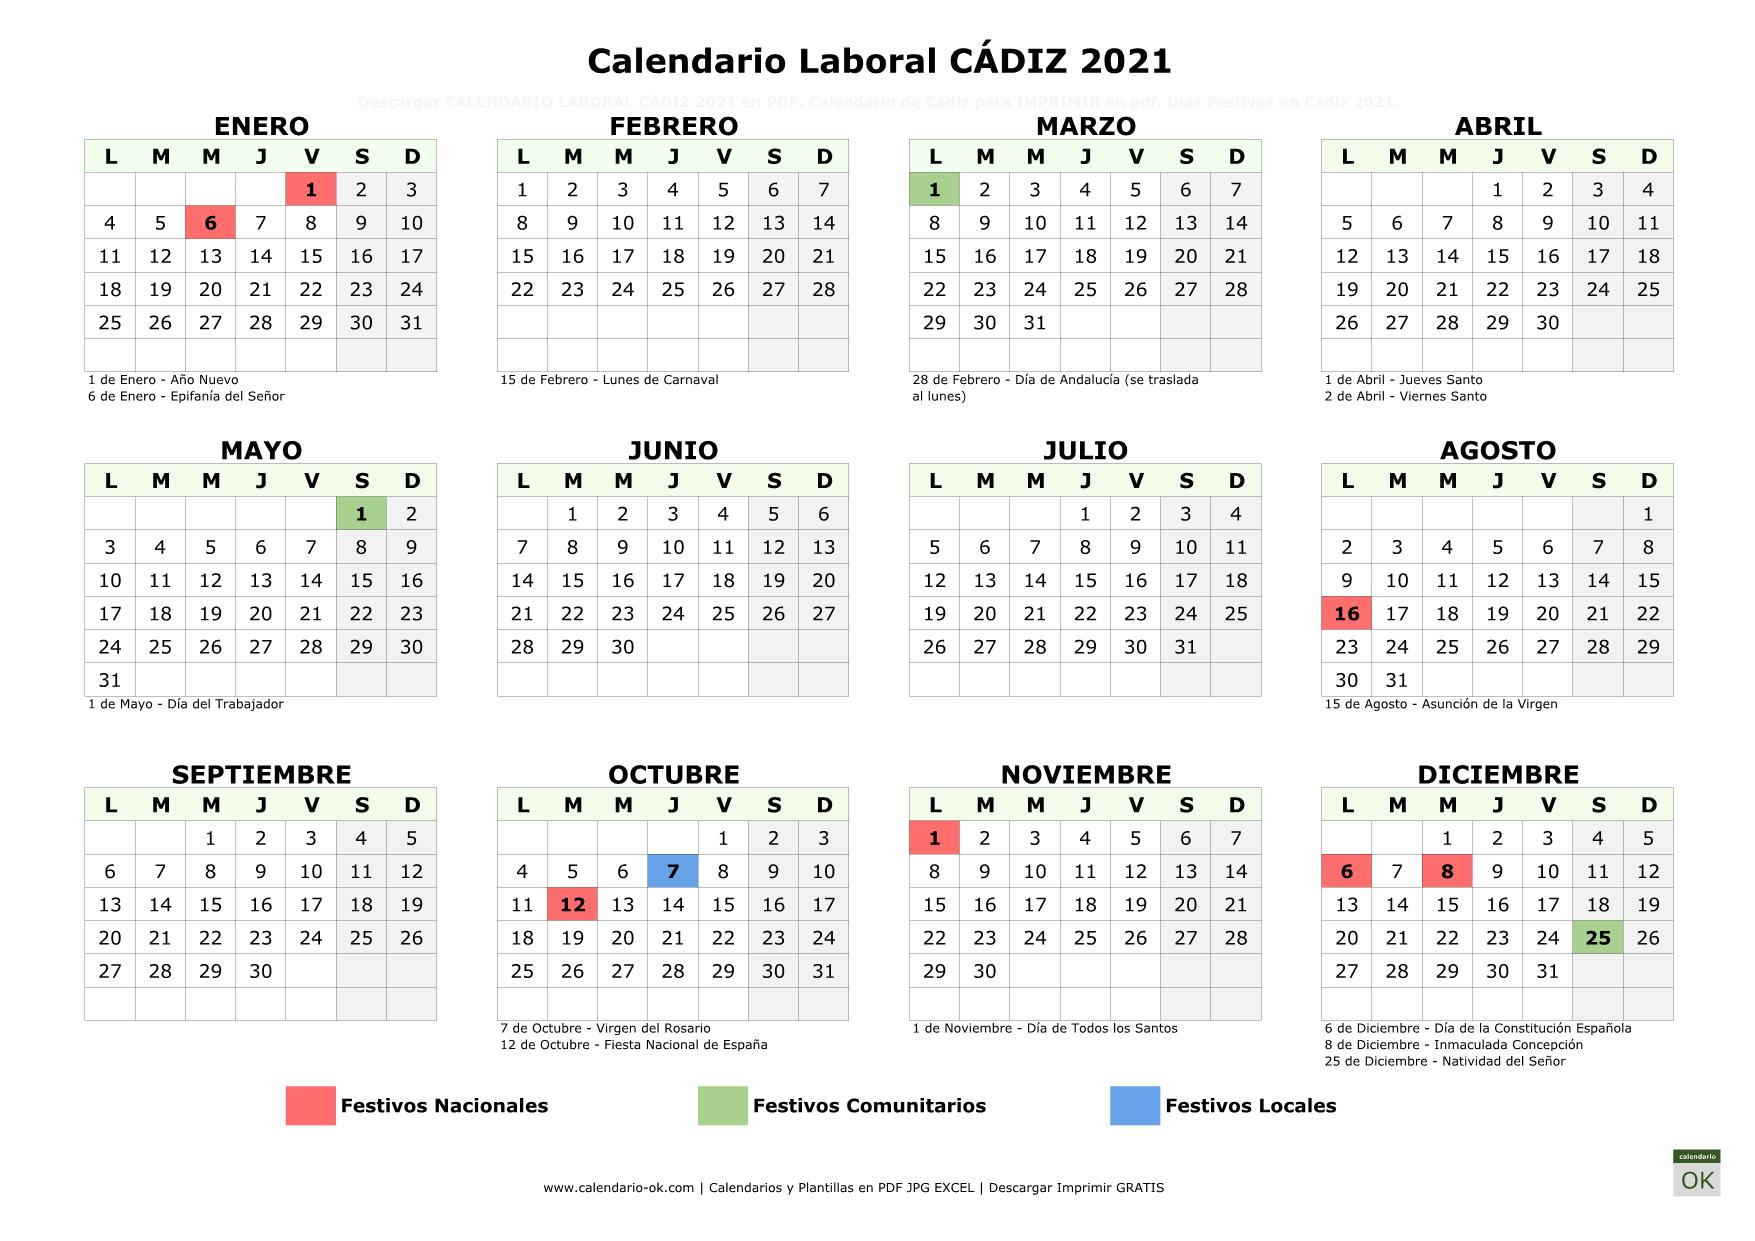 Calendario Laboral Cádiz 2021 horizontal